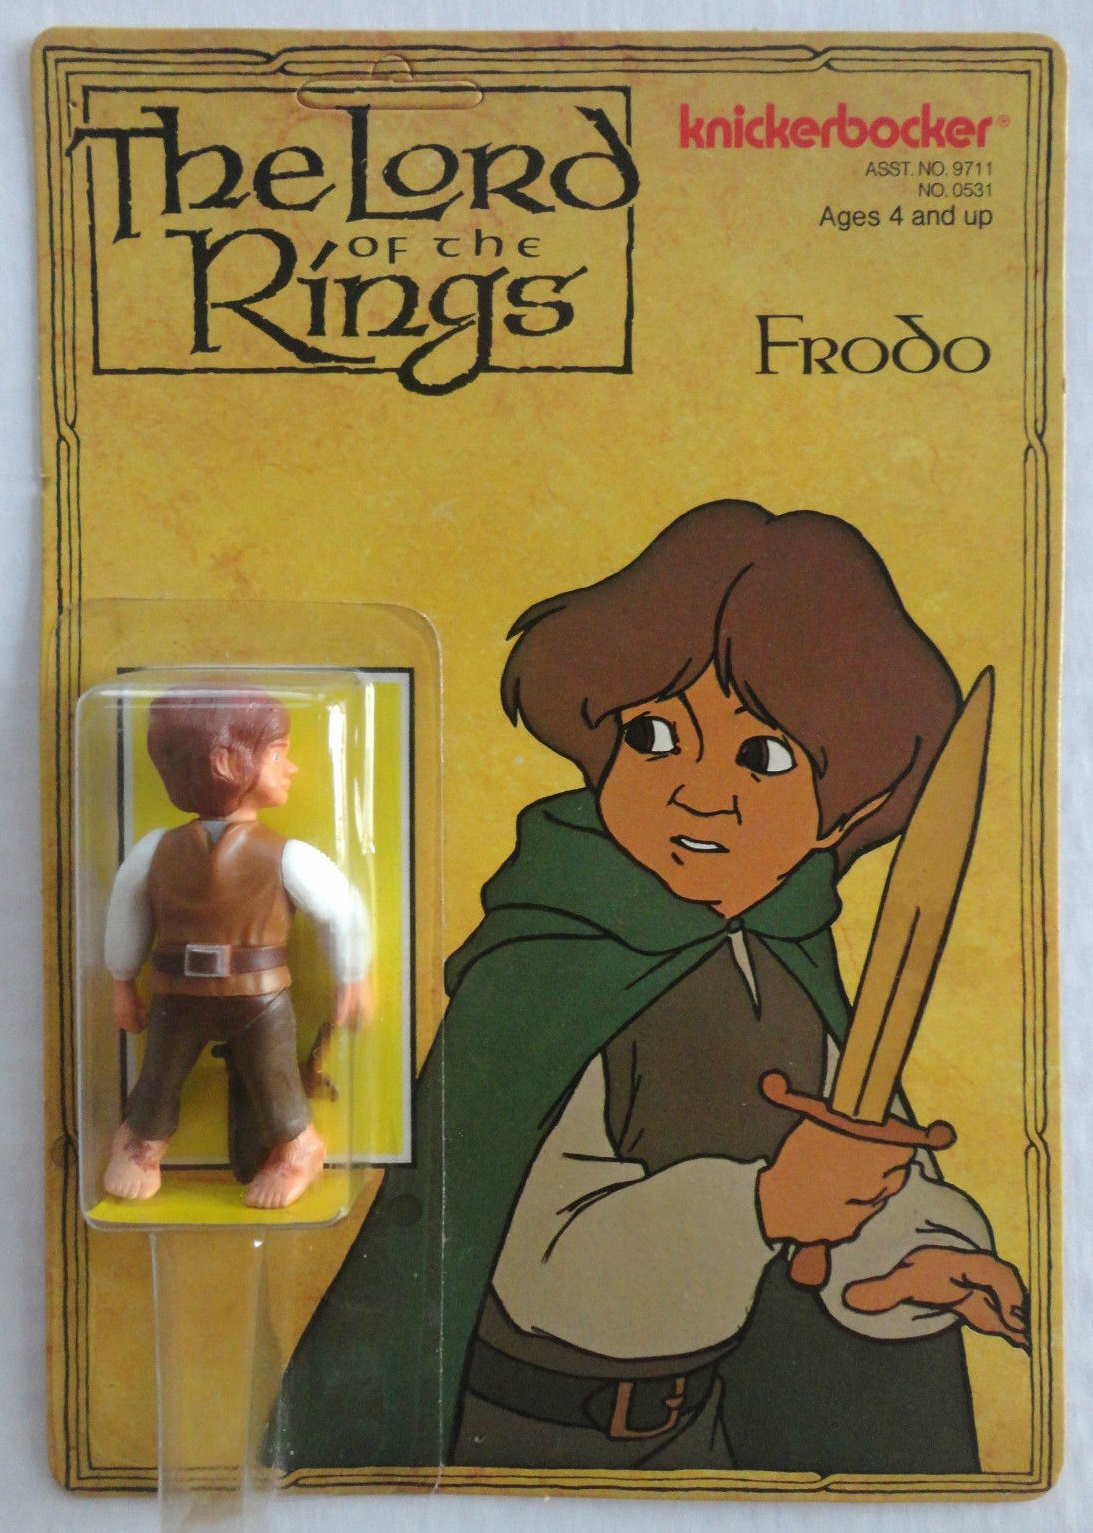 wood pages return the ray rings movie lord htm of frodo king elijah blu in